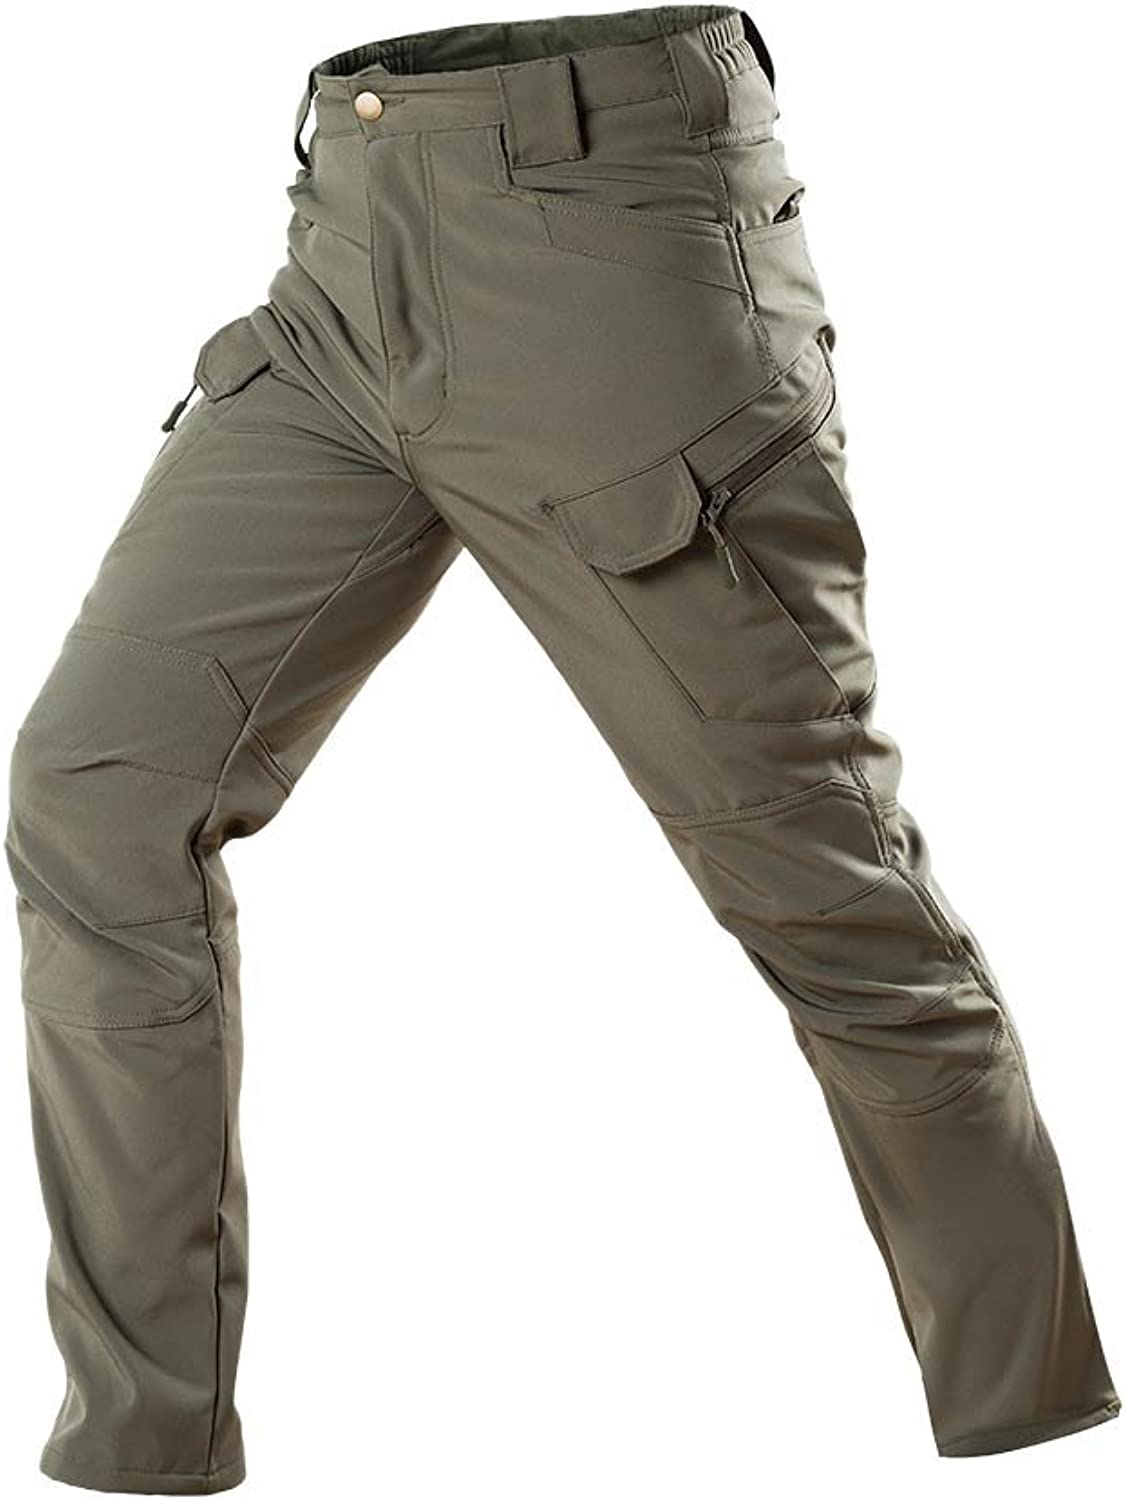 ATAIRSOFT Men's BDU Combat Waterproof Trousers for Hiking Airsoft OD